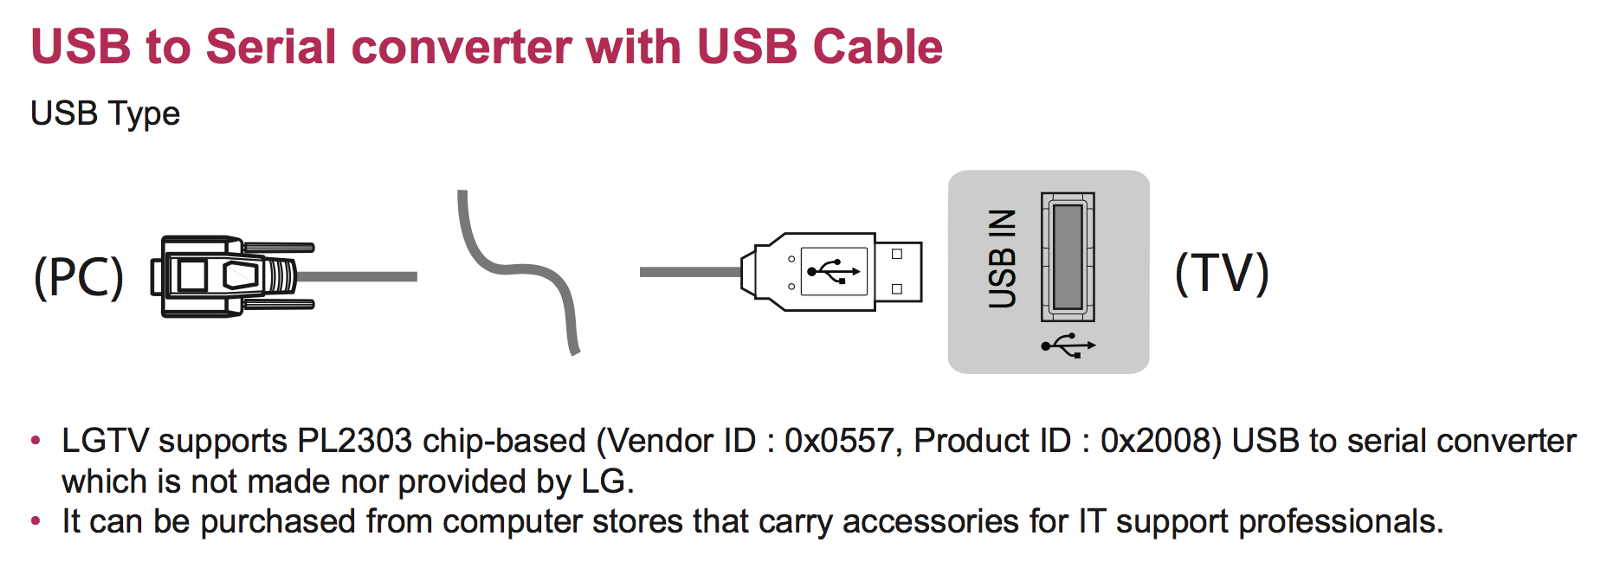 Wiringpi Serial C Home Automation With Raspberry Pi Homebridge R X Seger Medium The Lg 55ec9300 Owners Manual Does Not Seem To Mention Wol But Page 35 Documents External Control Devices First A Usb Converter Pl2303